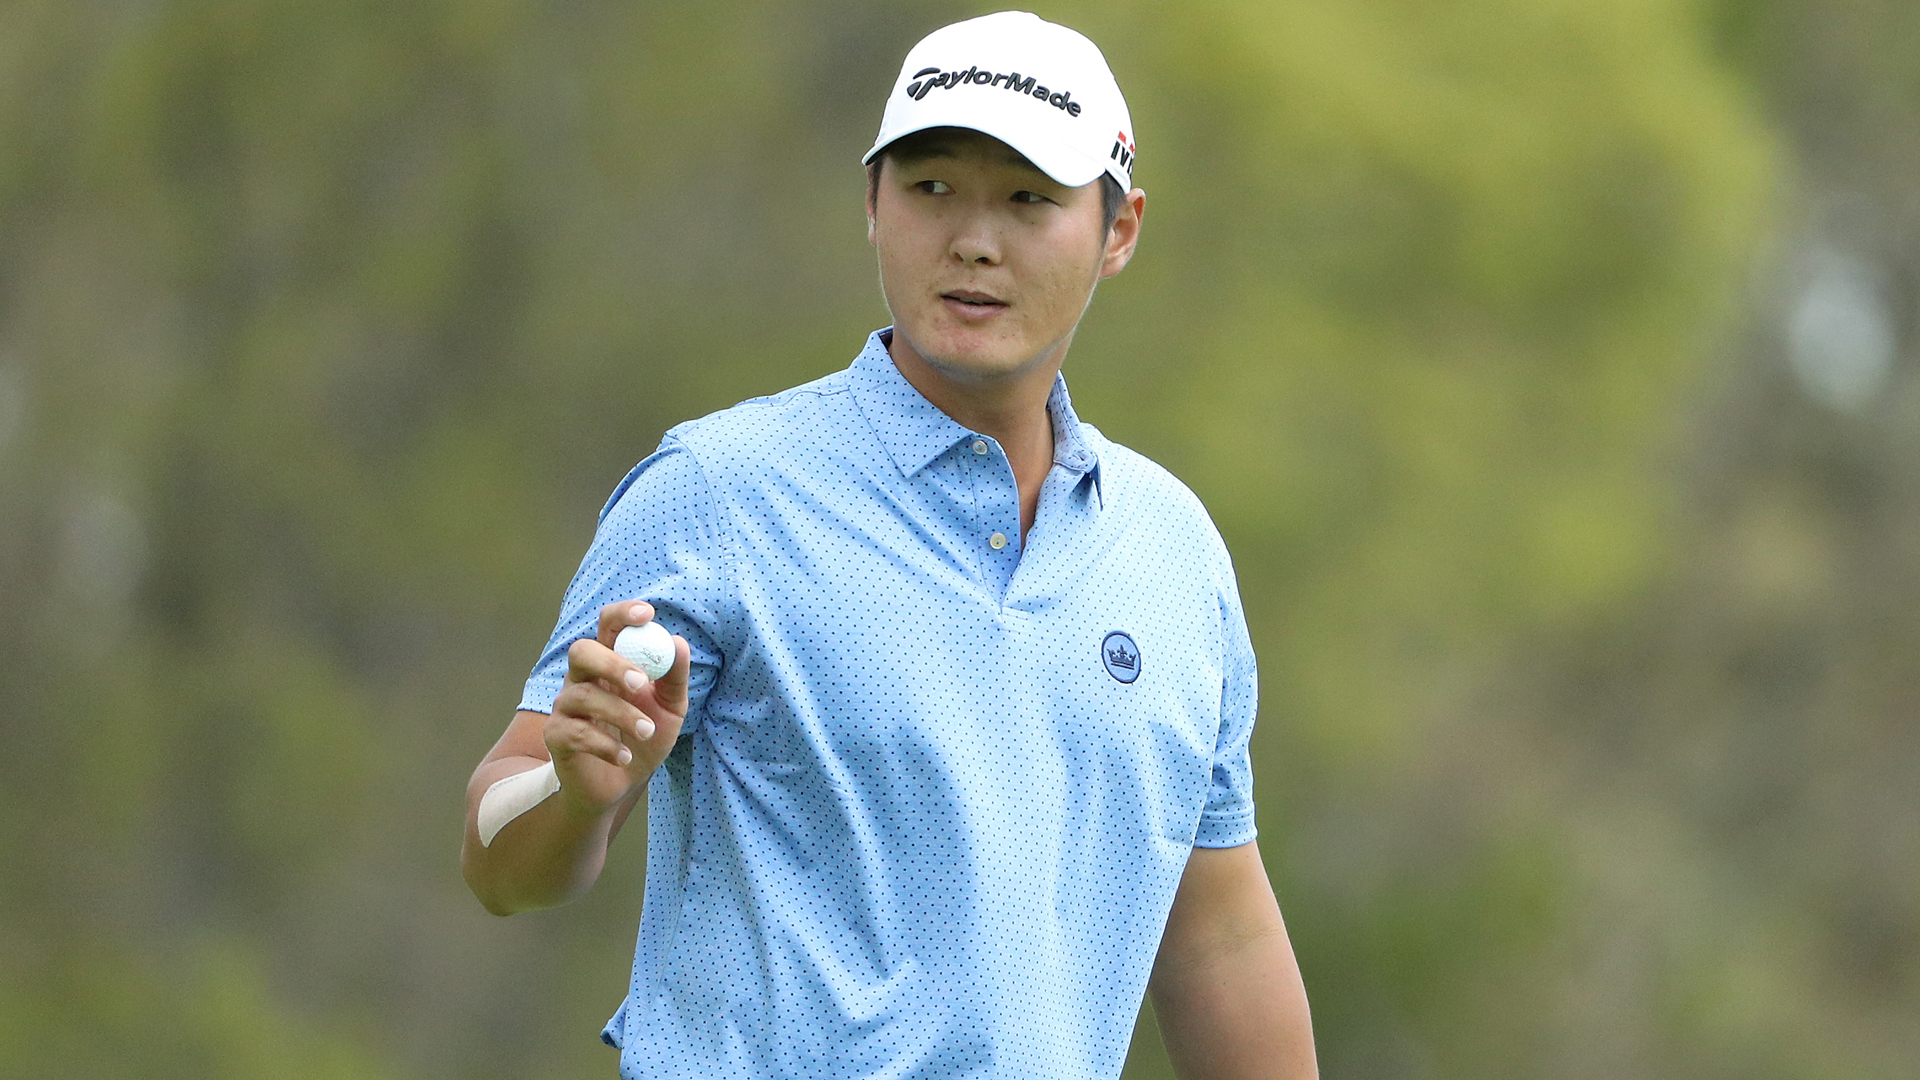 Lee pleased to convert chances at US PGA